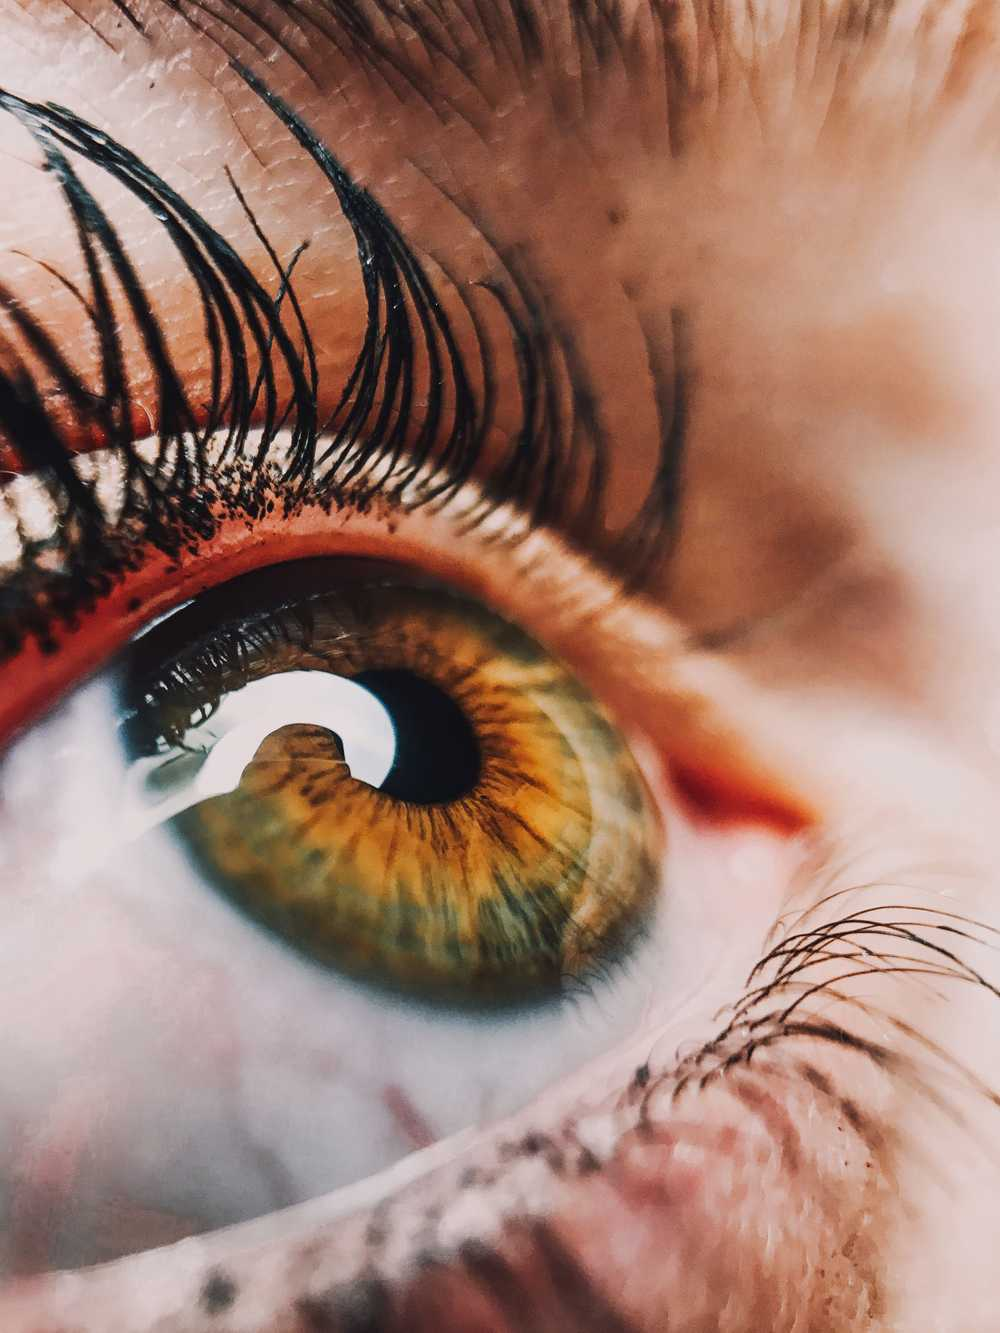 human eye close-up photography